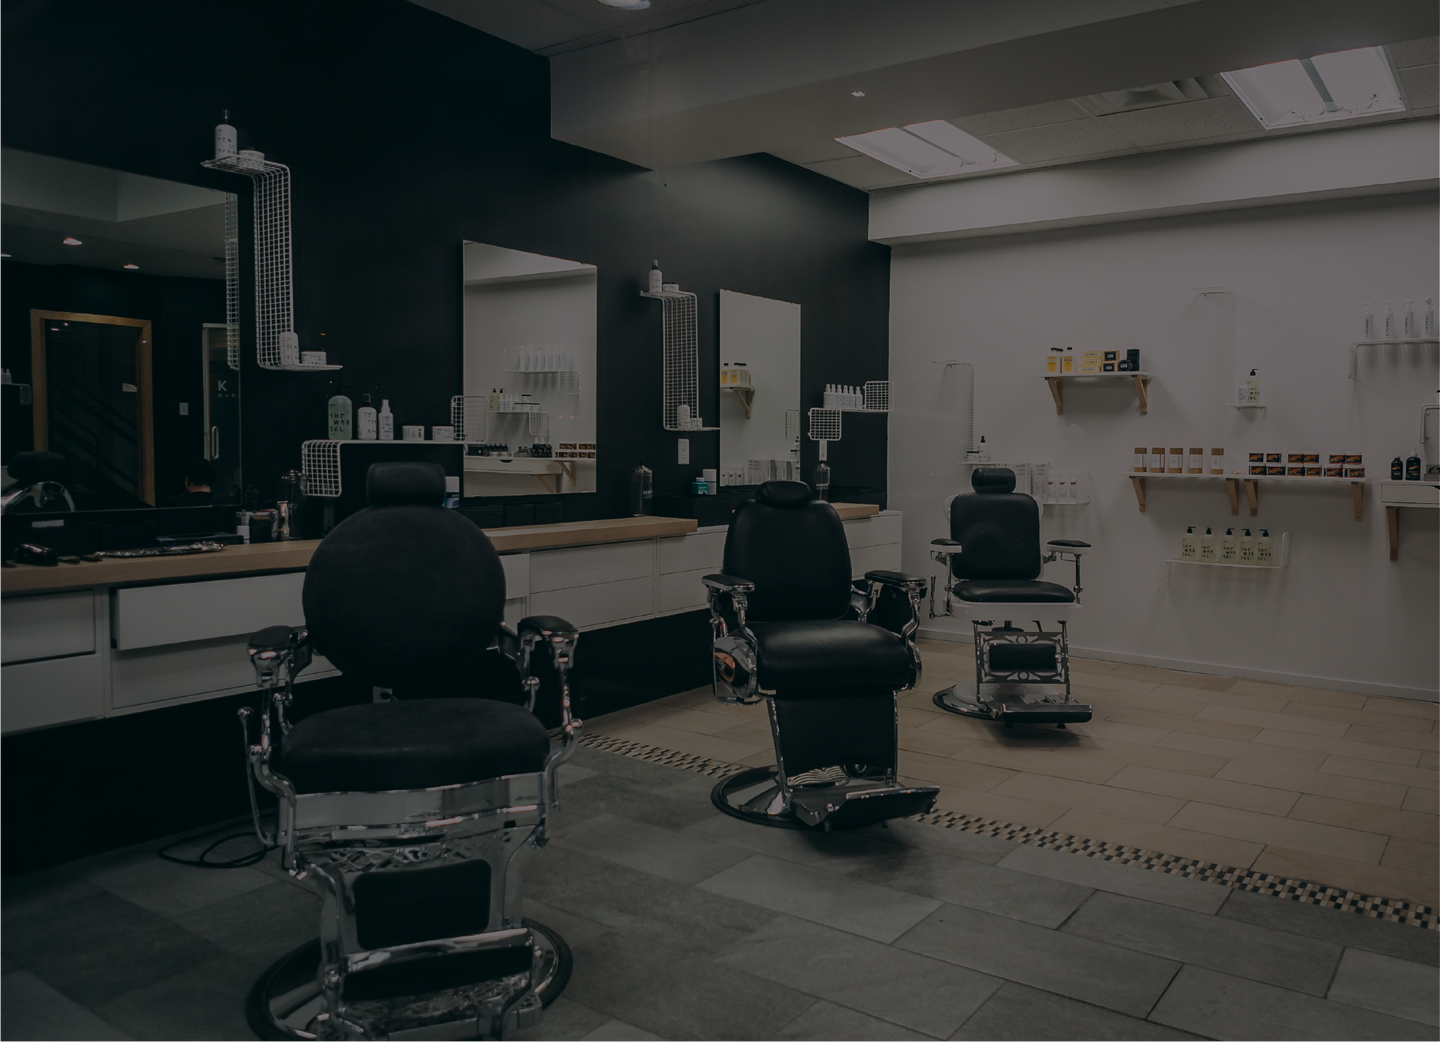 Rivière-des-prairies Montreal montreal-nord anjou rdp coiffeur homme barbier barber barbershop salon coupe barbe